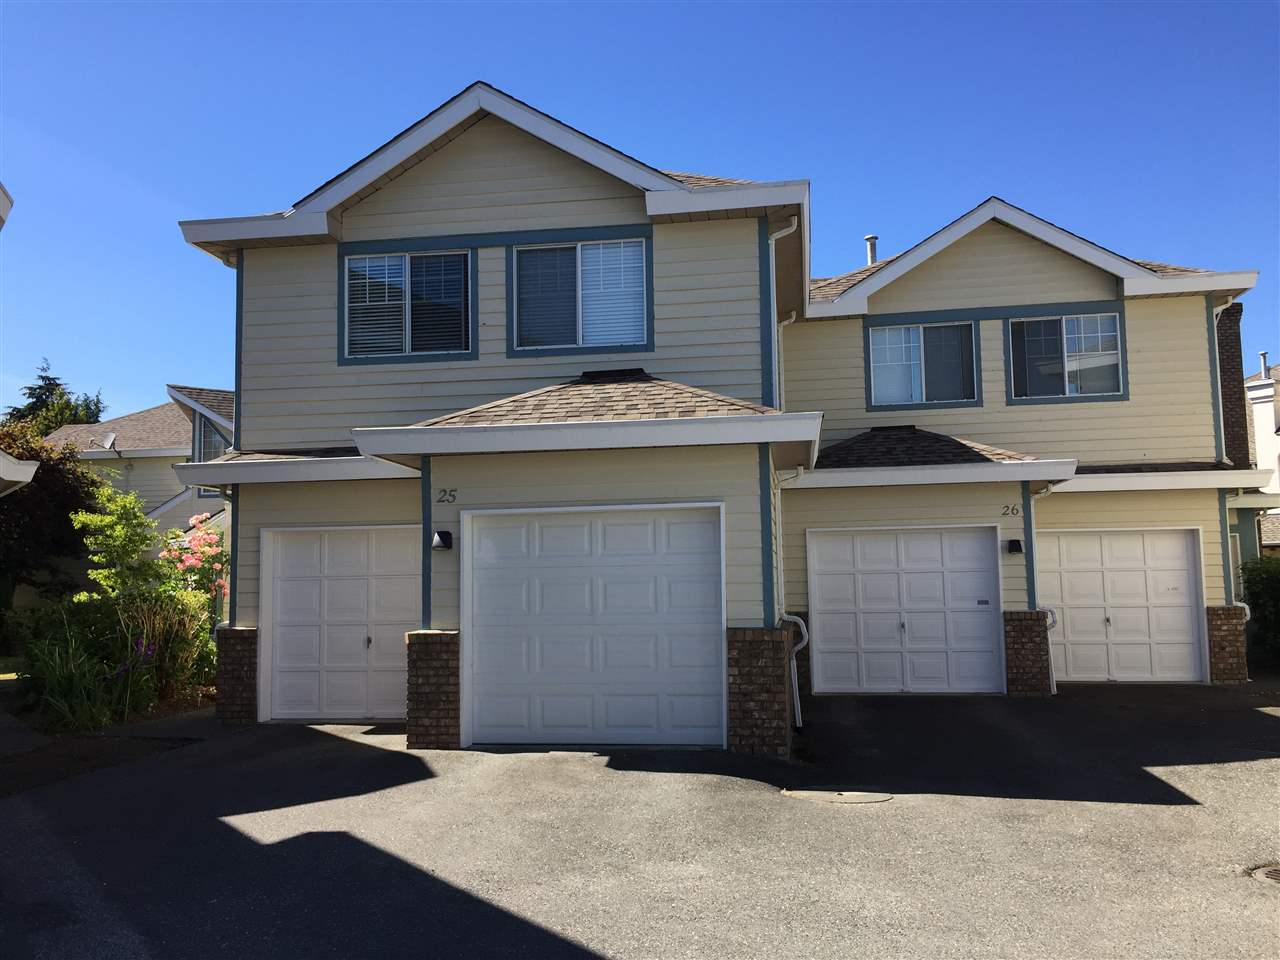 Townhouse at 25 8551 GENERAL CURRIE ROAD, Unit 25, Richmond, British Columbia. Image 1